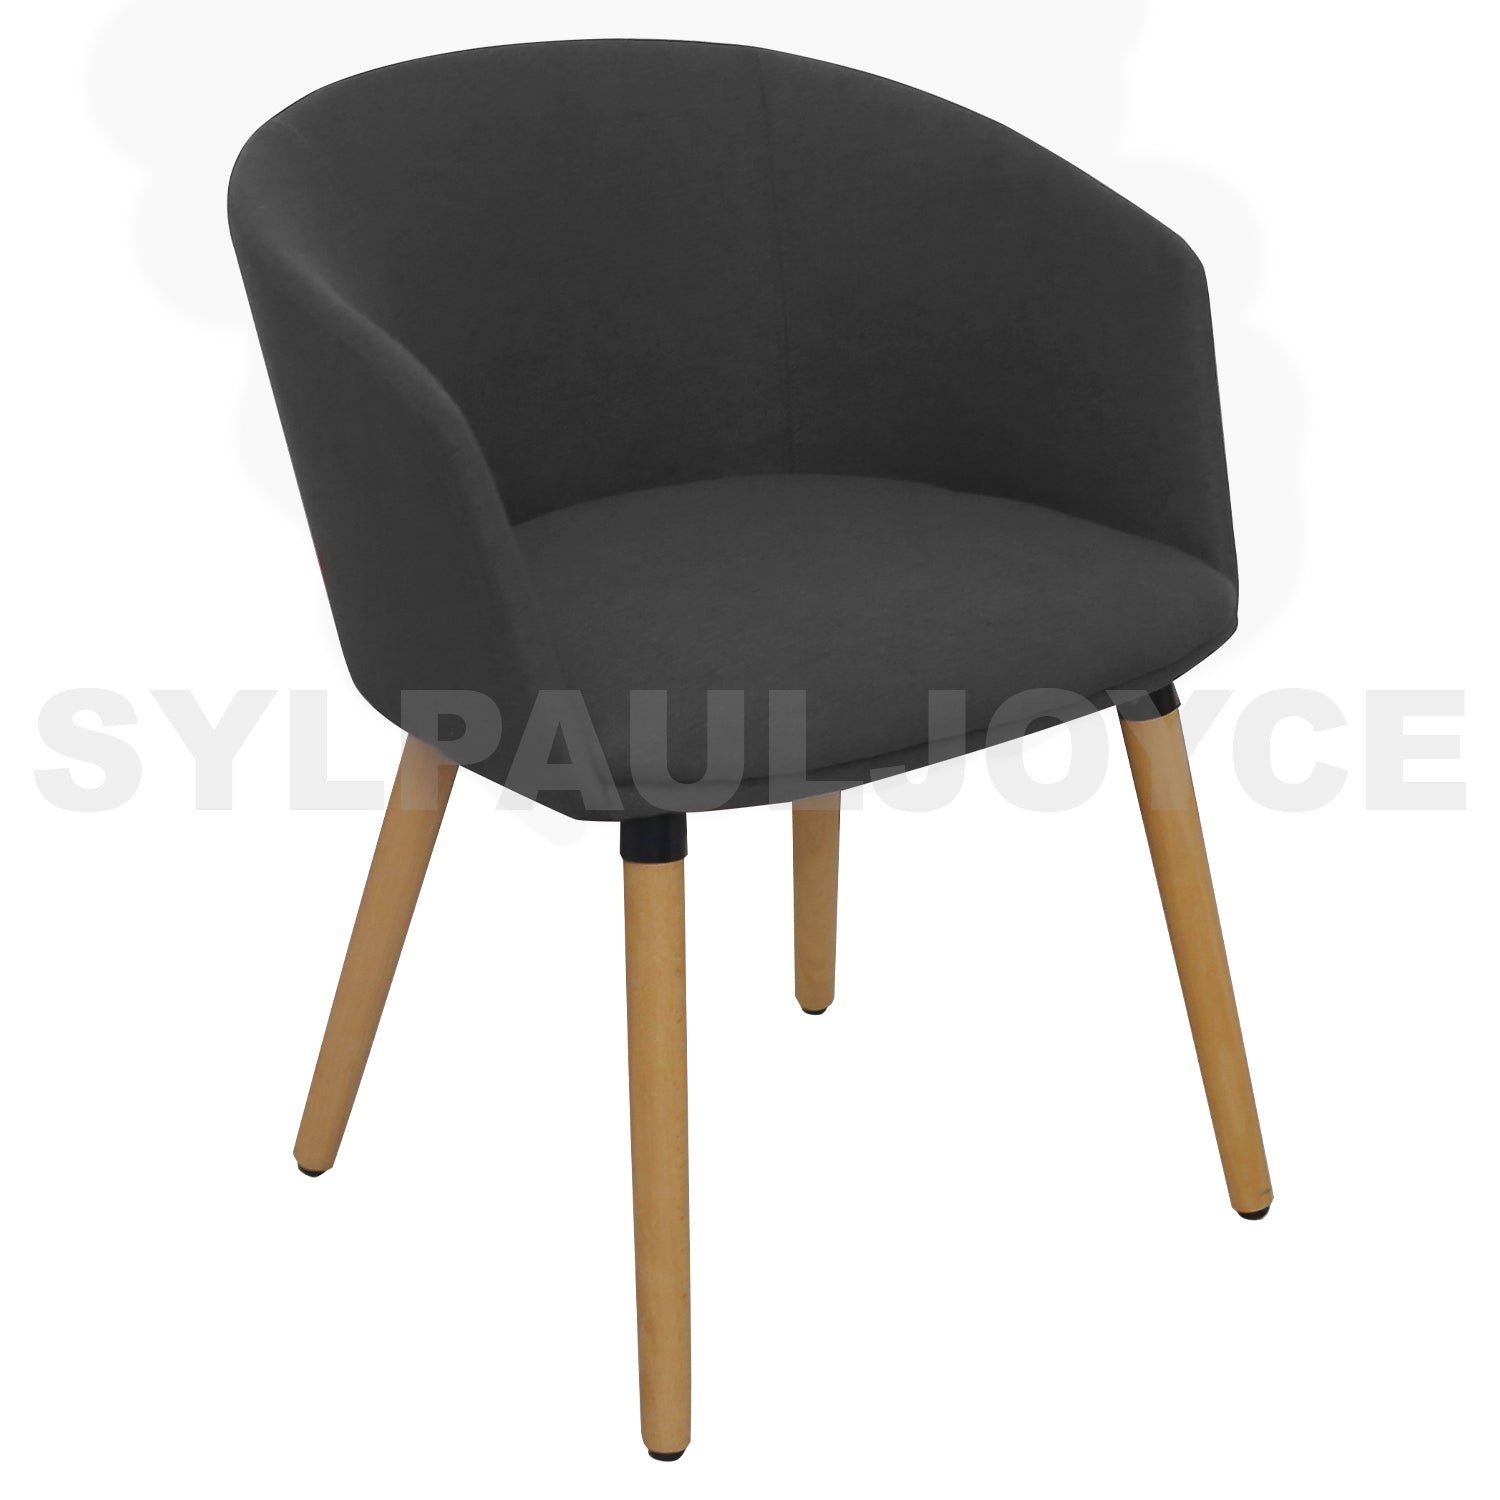 Alice Round Chair - Sylpauljoyce Furniture, Lights & Decor